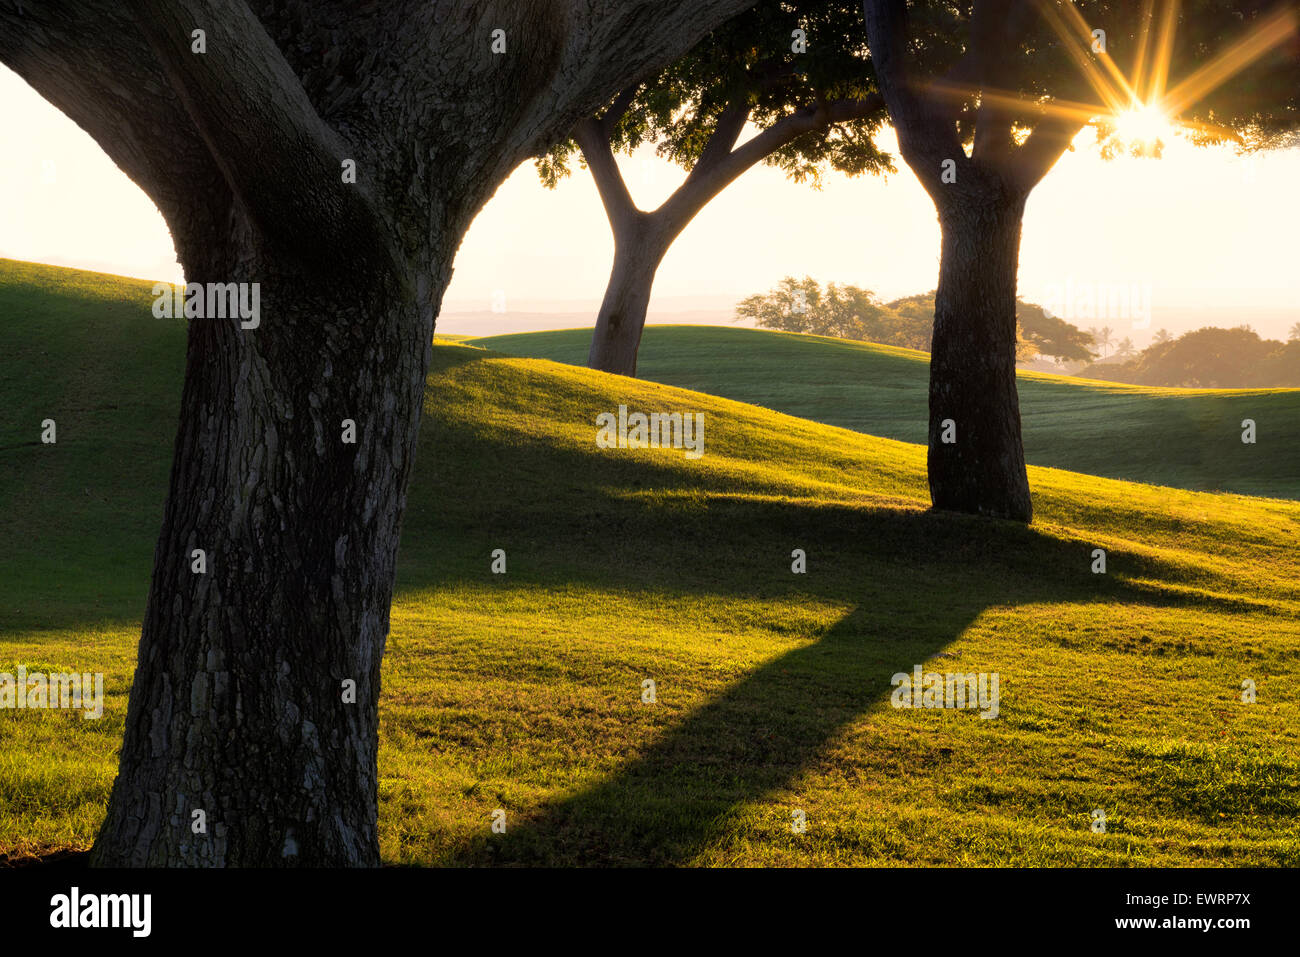 Sunrise through trees and lawn at Four Seasons Hotel, Hawaii, The Big Island. - Stock Image